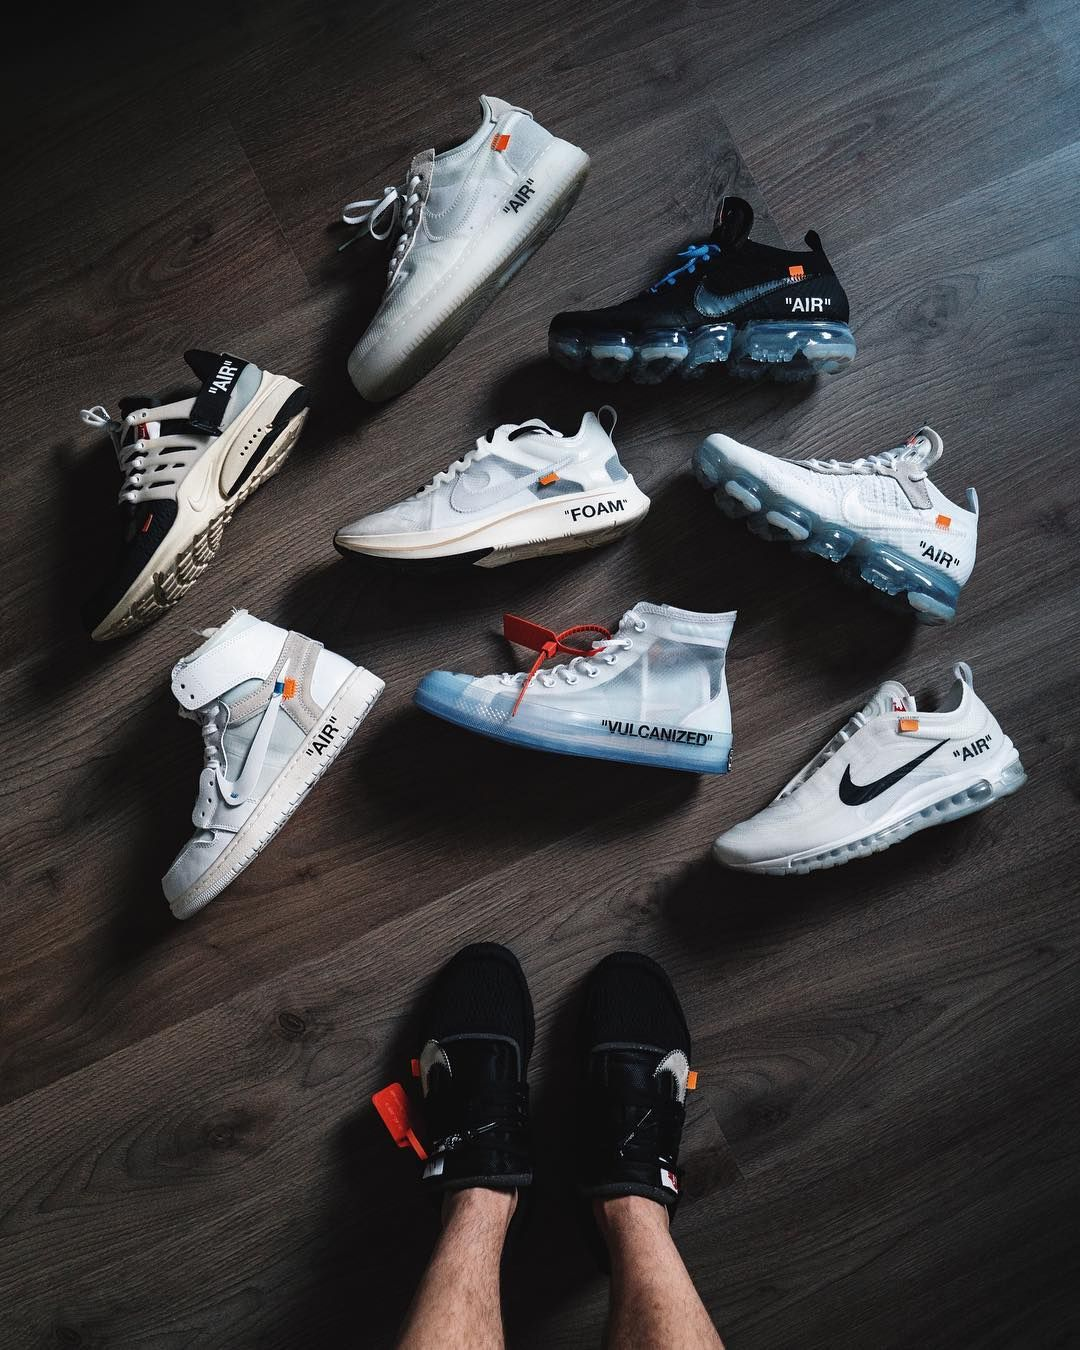 reducir deslealtad contaminación  Off white x Nike collection #RePin by AT Social Media Marketing - Pinterest  Marketing Specialists ATSocialMedia.c… | Off white shoes, Sneakers,  Sneakers men fashion